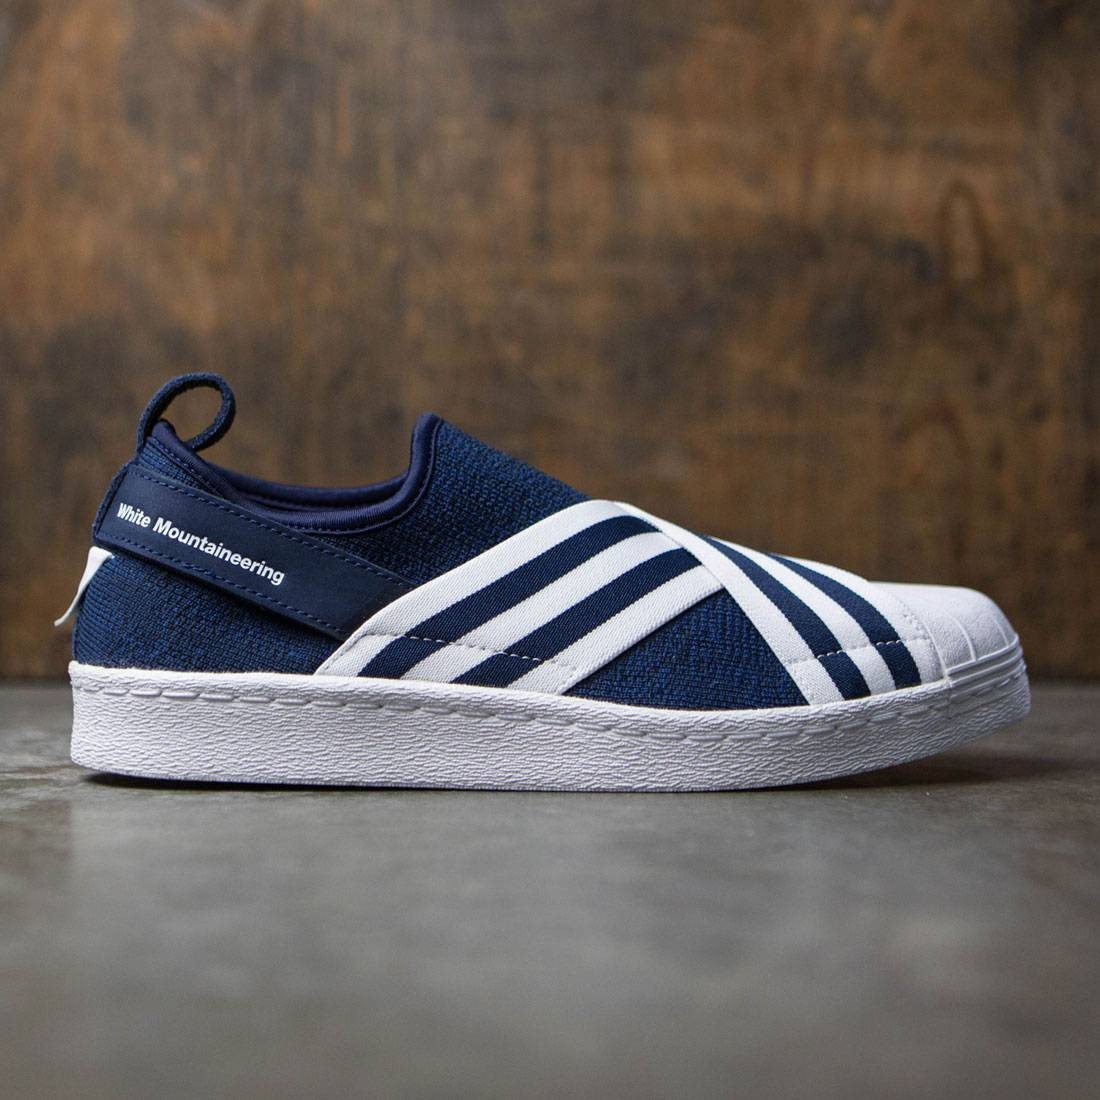 Adidas Superstar Slip On White Mountaineering Grey Black